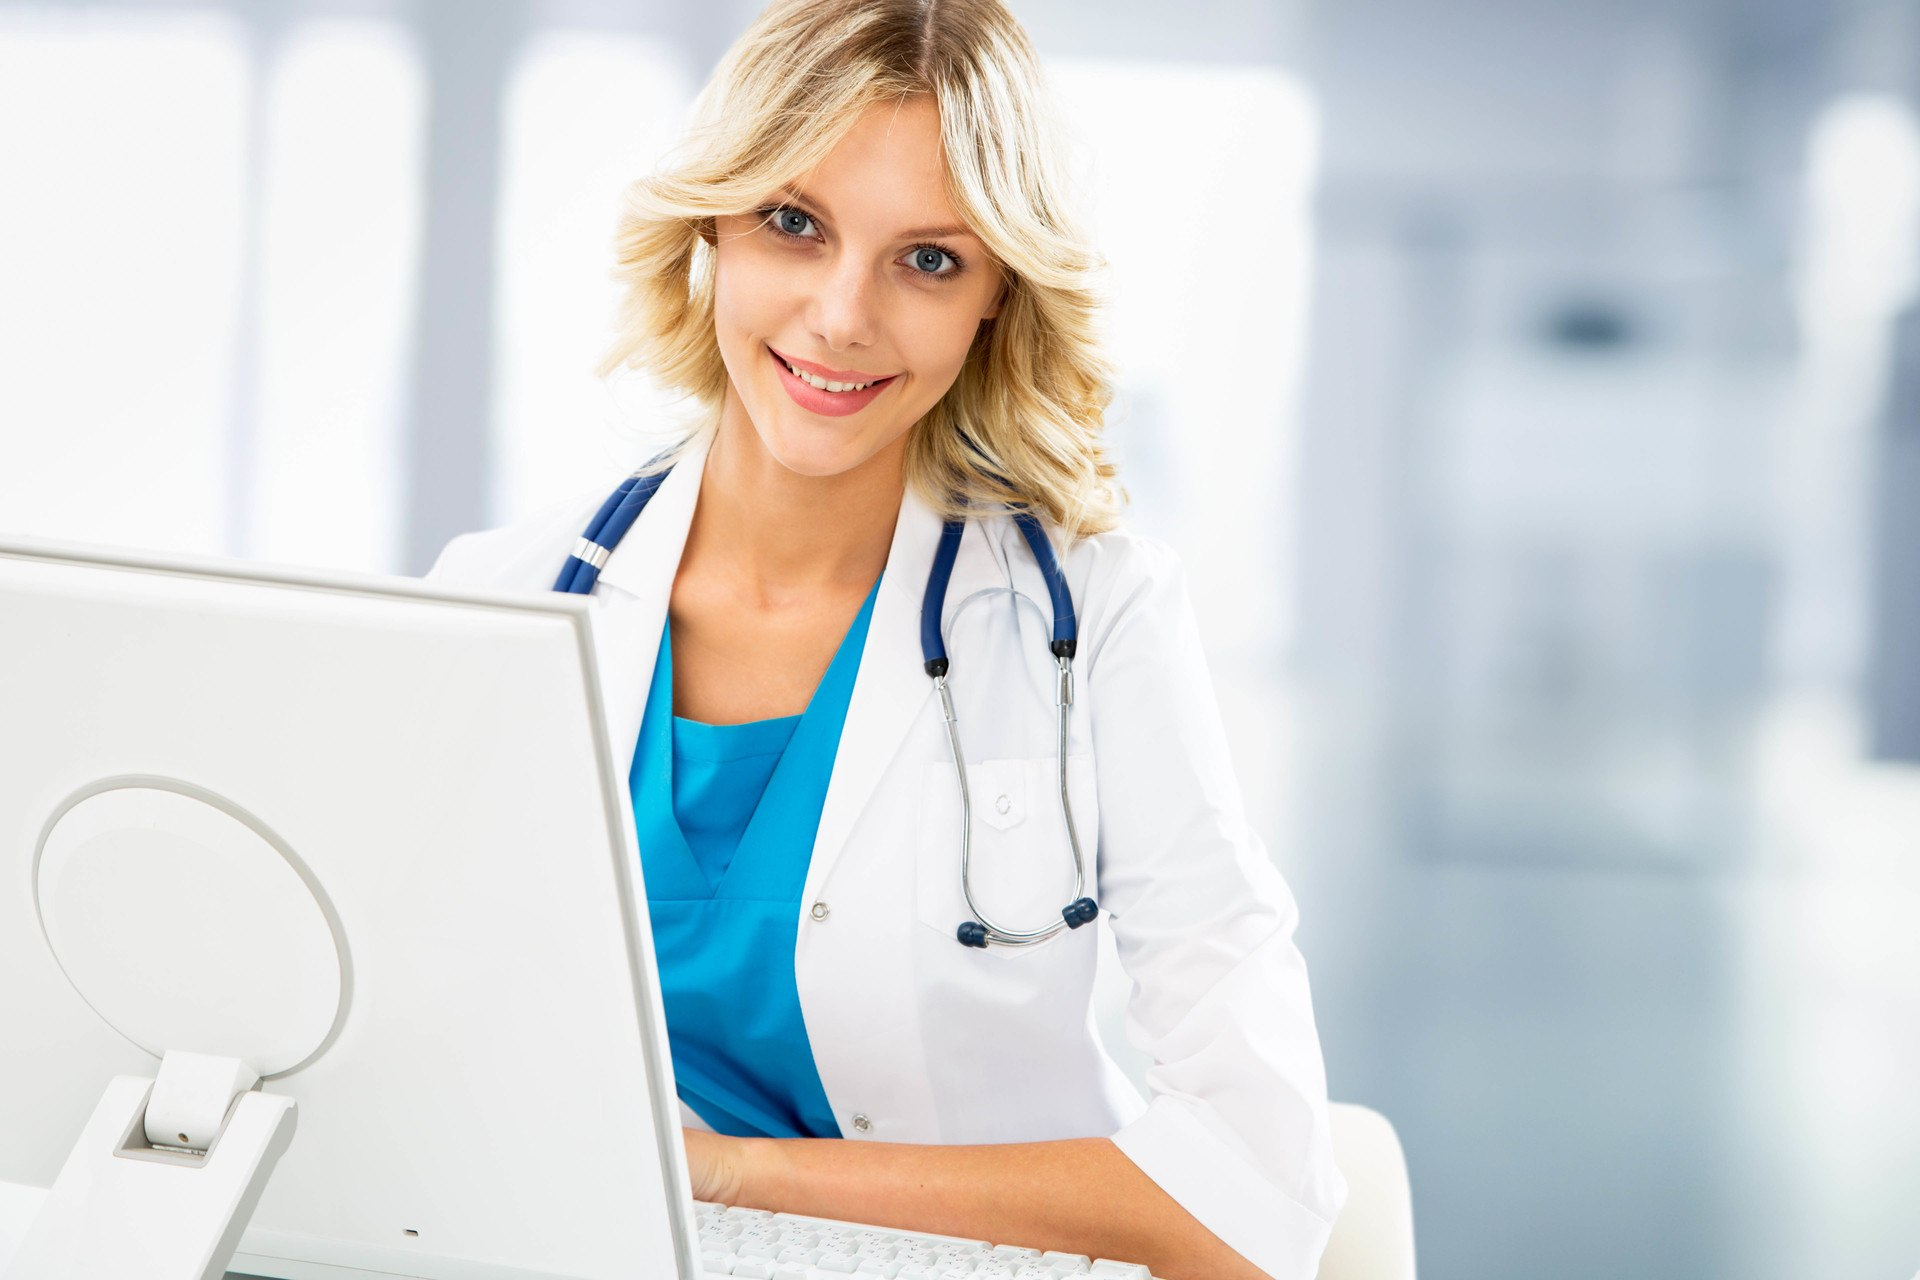 Pharmaceutical Industry: Is Online Safety Training A Viable Option?